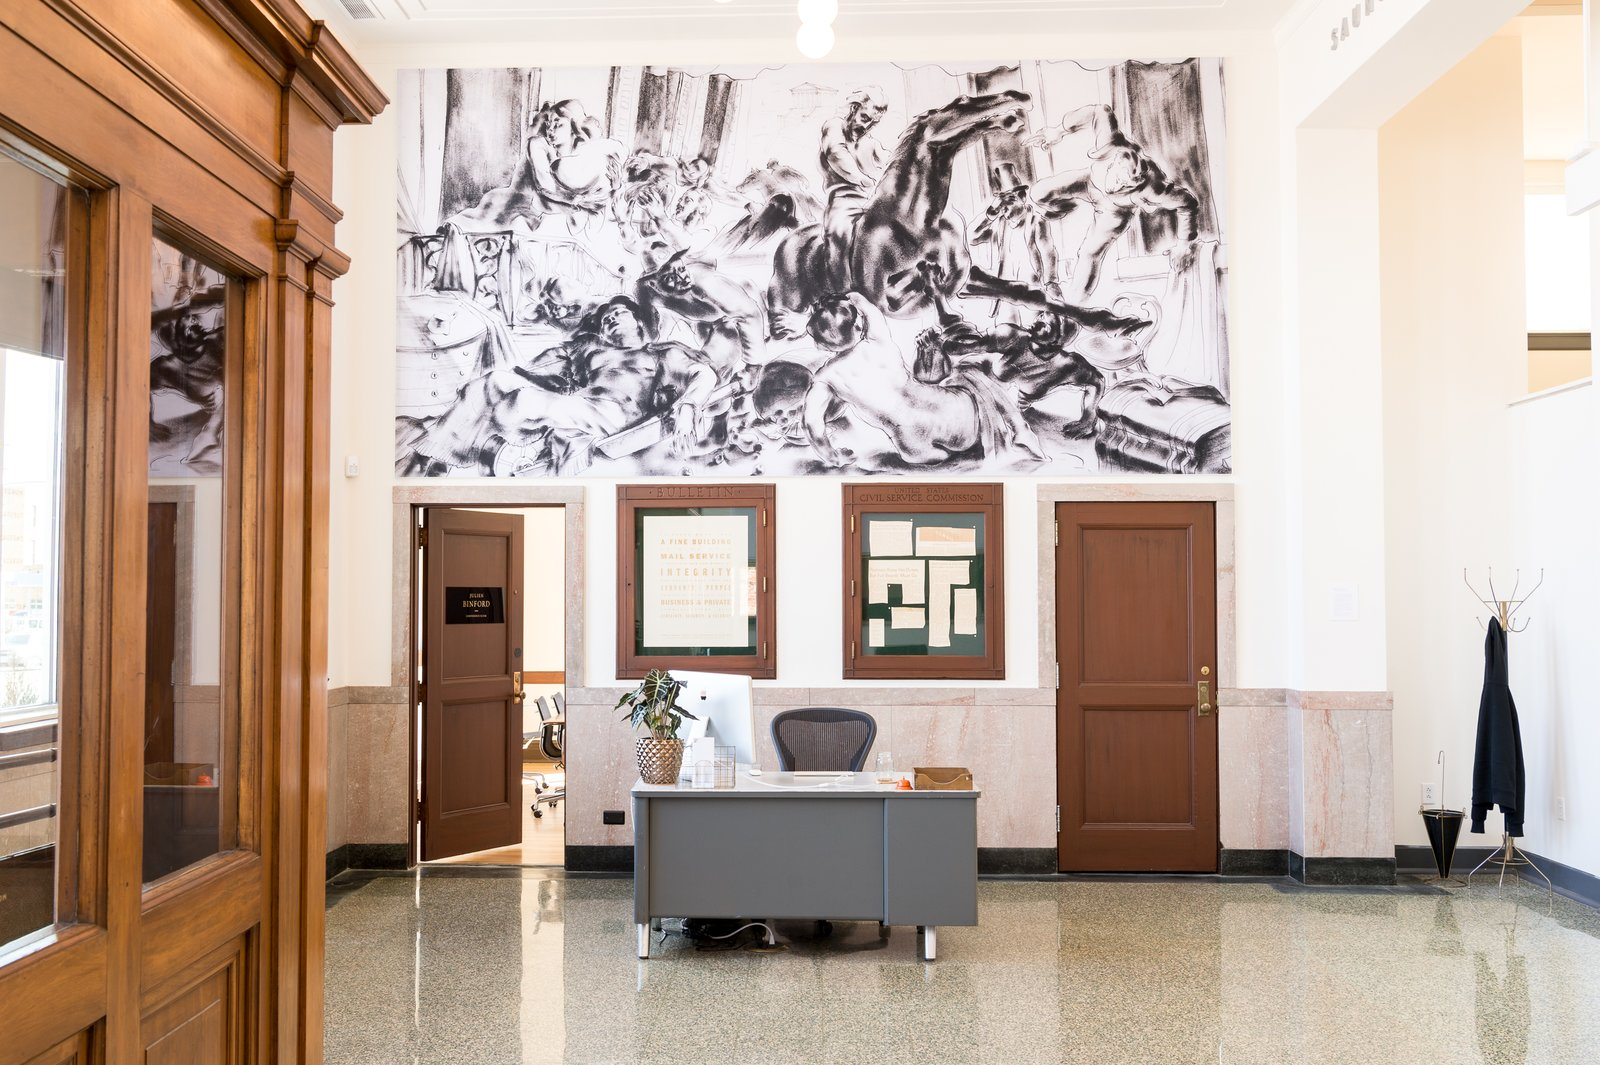 A Historic U.S. Post Office Is Transformed Into a Digital Agency's New Modern Office - Photo 5 of 16